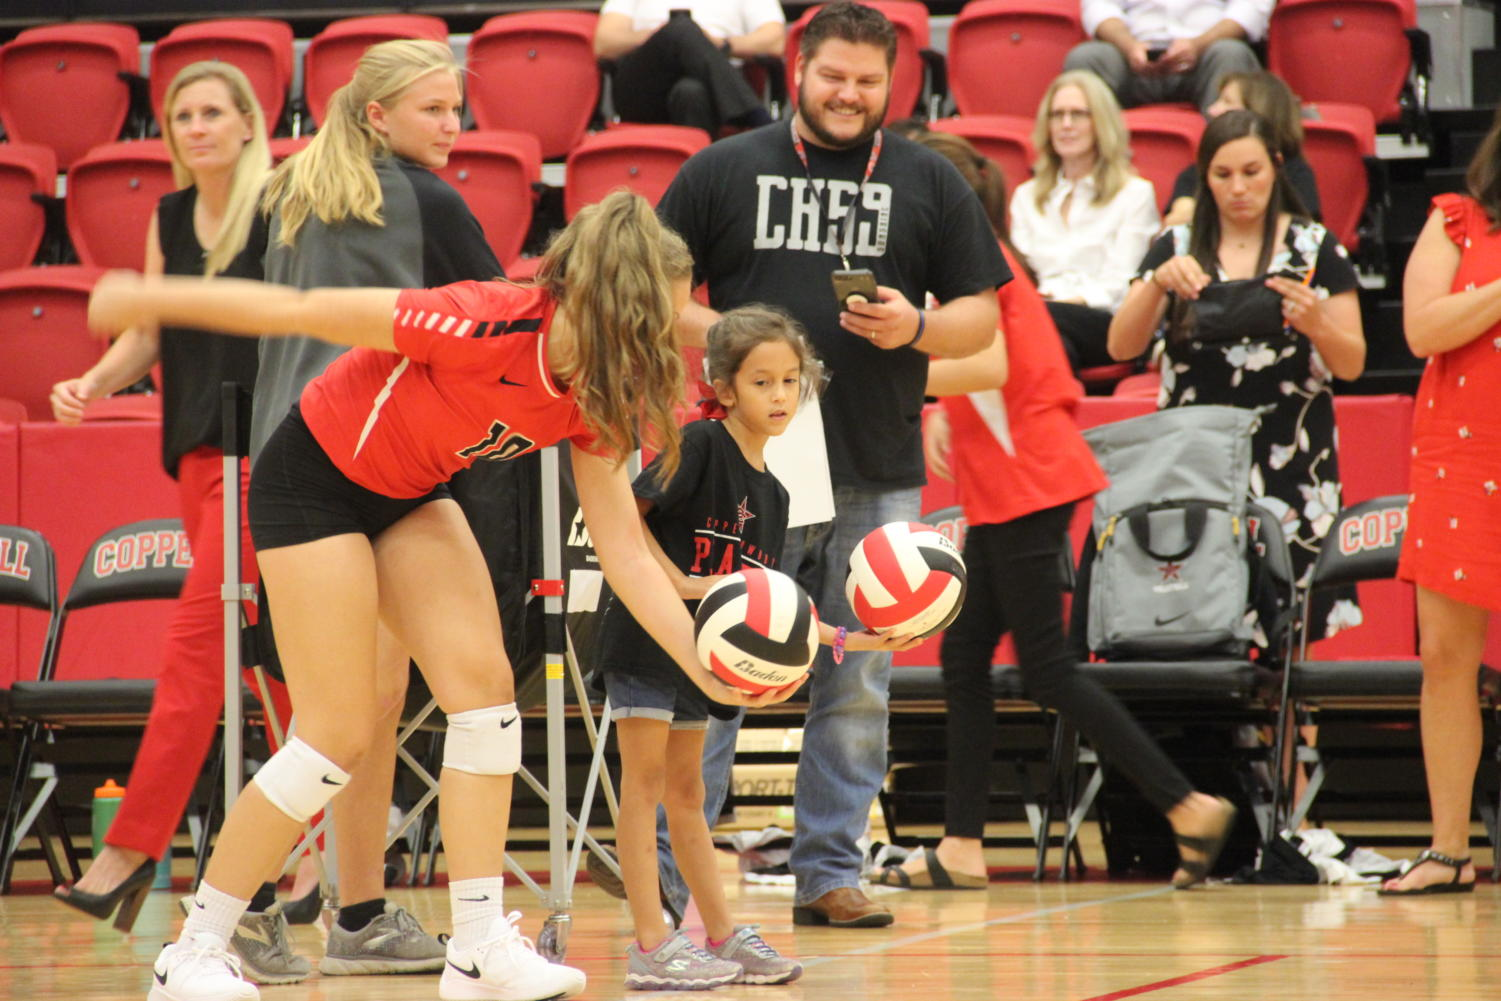 Coppell+JV+volleyball+players+help+elementary+school+students+serve+to+win+T-shirts.+The+Coppell+volleyball+team+hosted+Elementary+Night+on+Tuesday+in+the+CHS+Arena+before+the+varsity+match+against+Arlington+Martin.